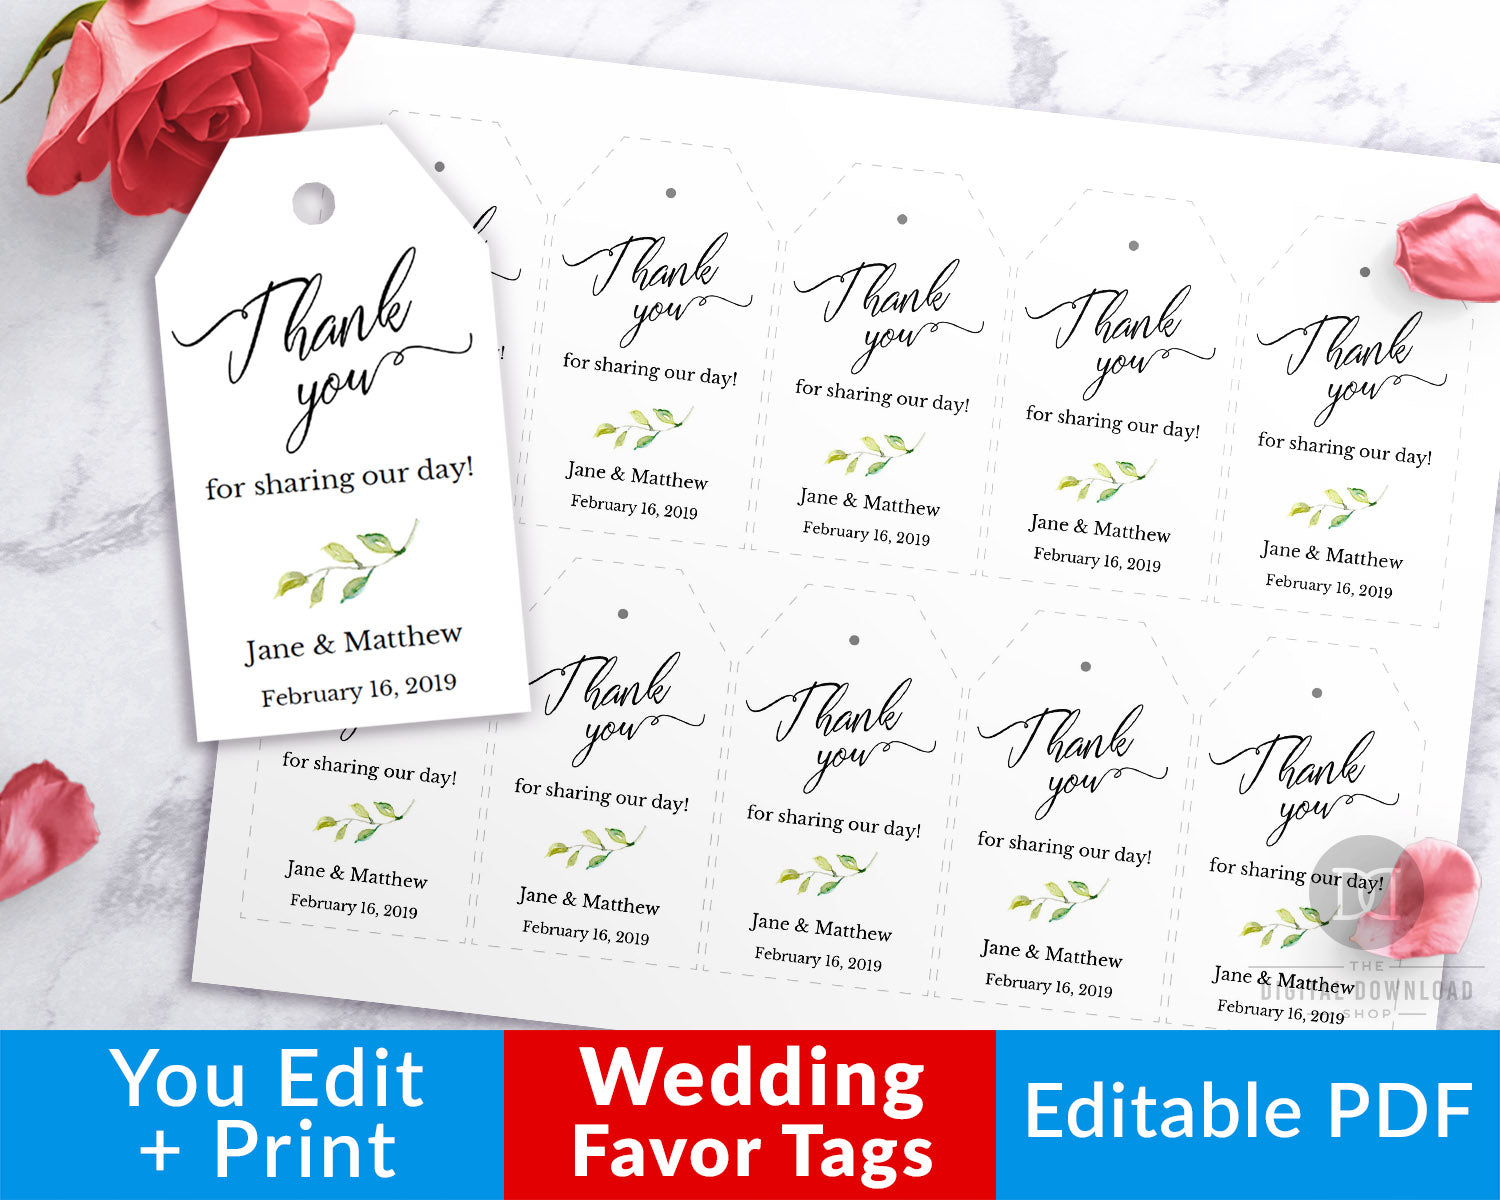 Wedding Favor Tags Printable Editable: Watercolor Greenery- These beautiful editable thank you tags would make lovely finishing touches to your wedding favors! | gift tags, thank you tags, wedding printables, #weddingFavors #favorTags #DigitalDownloadShop